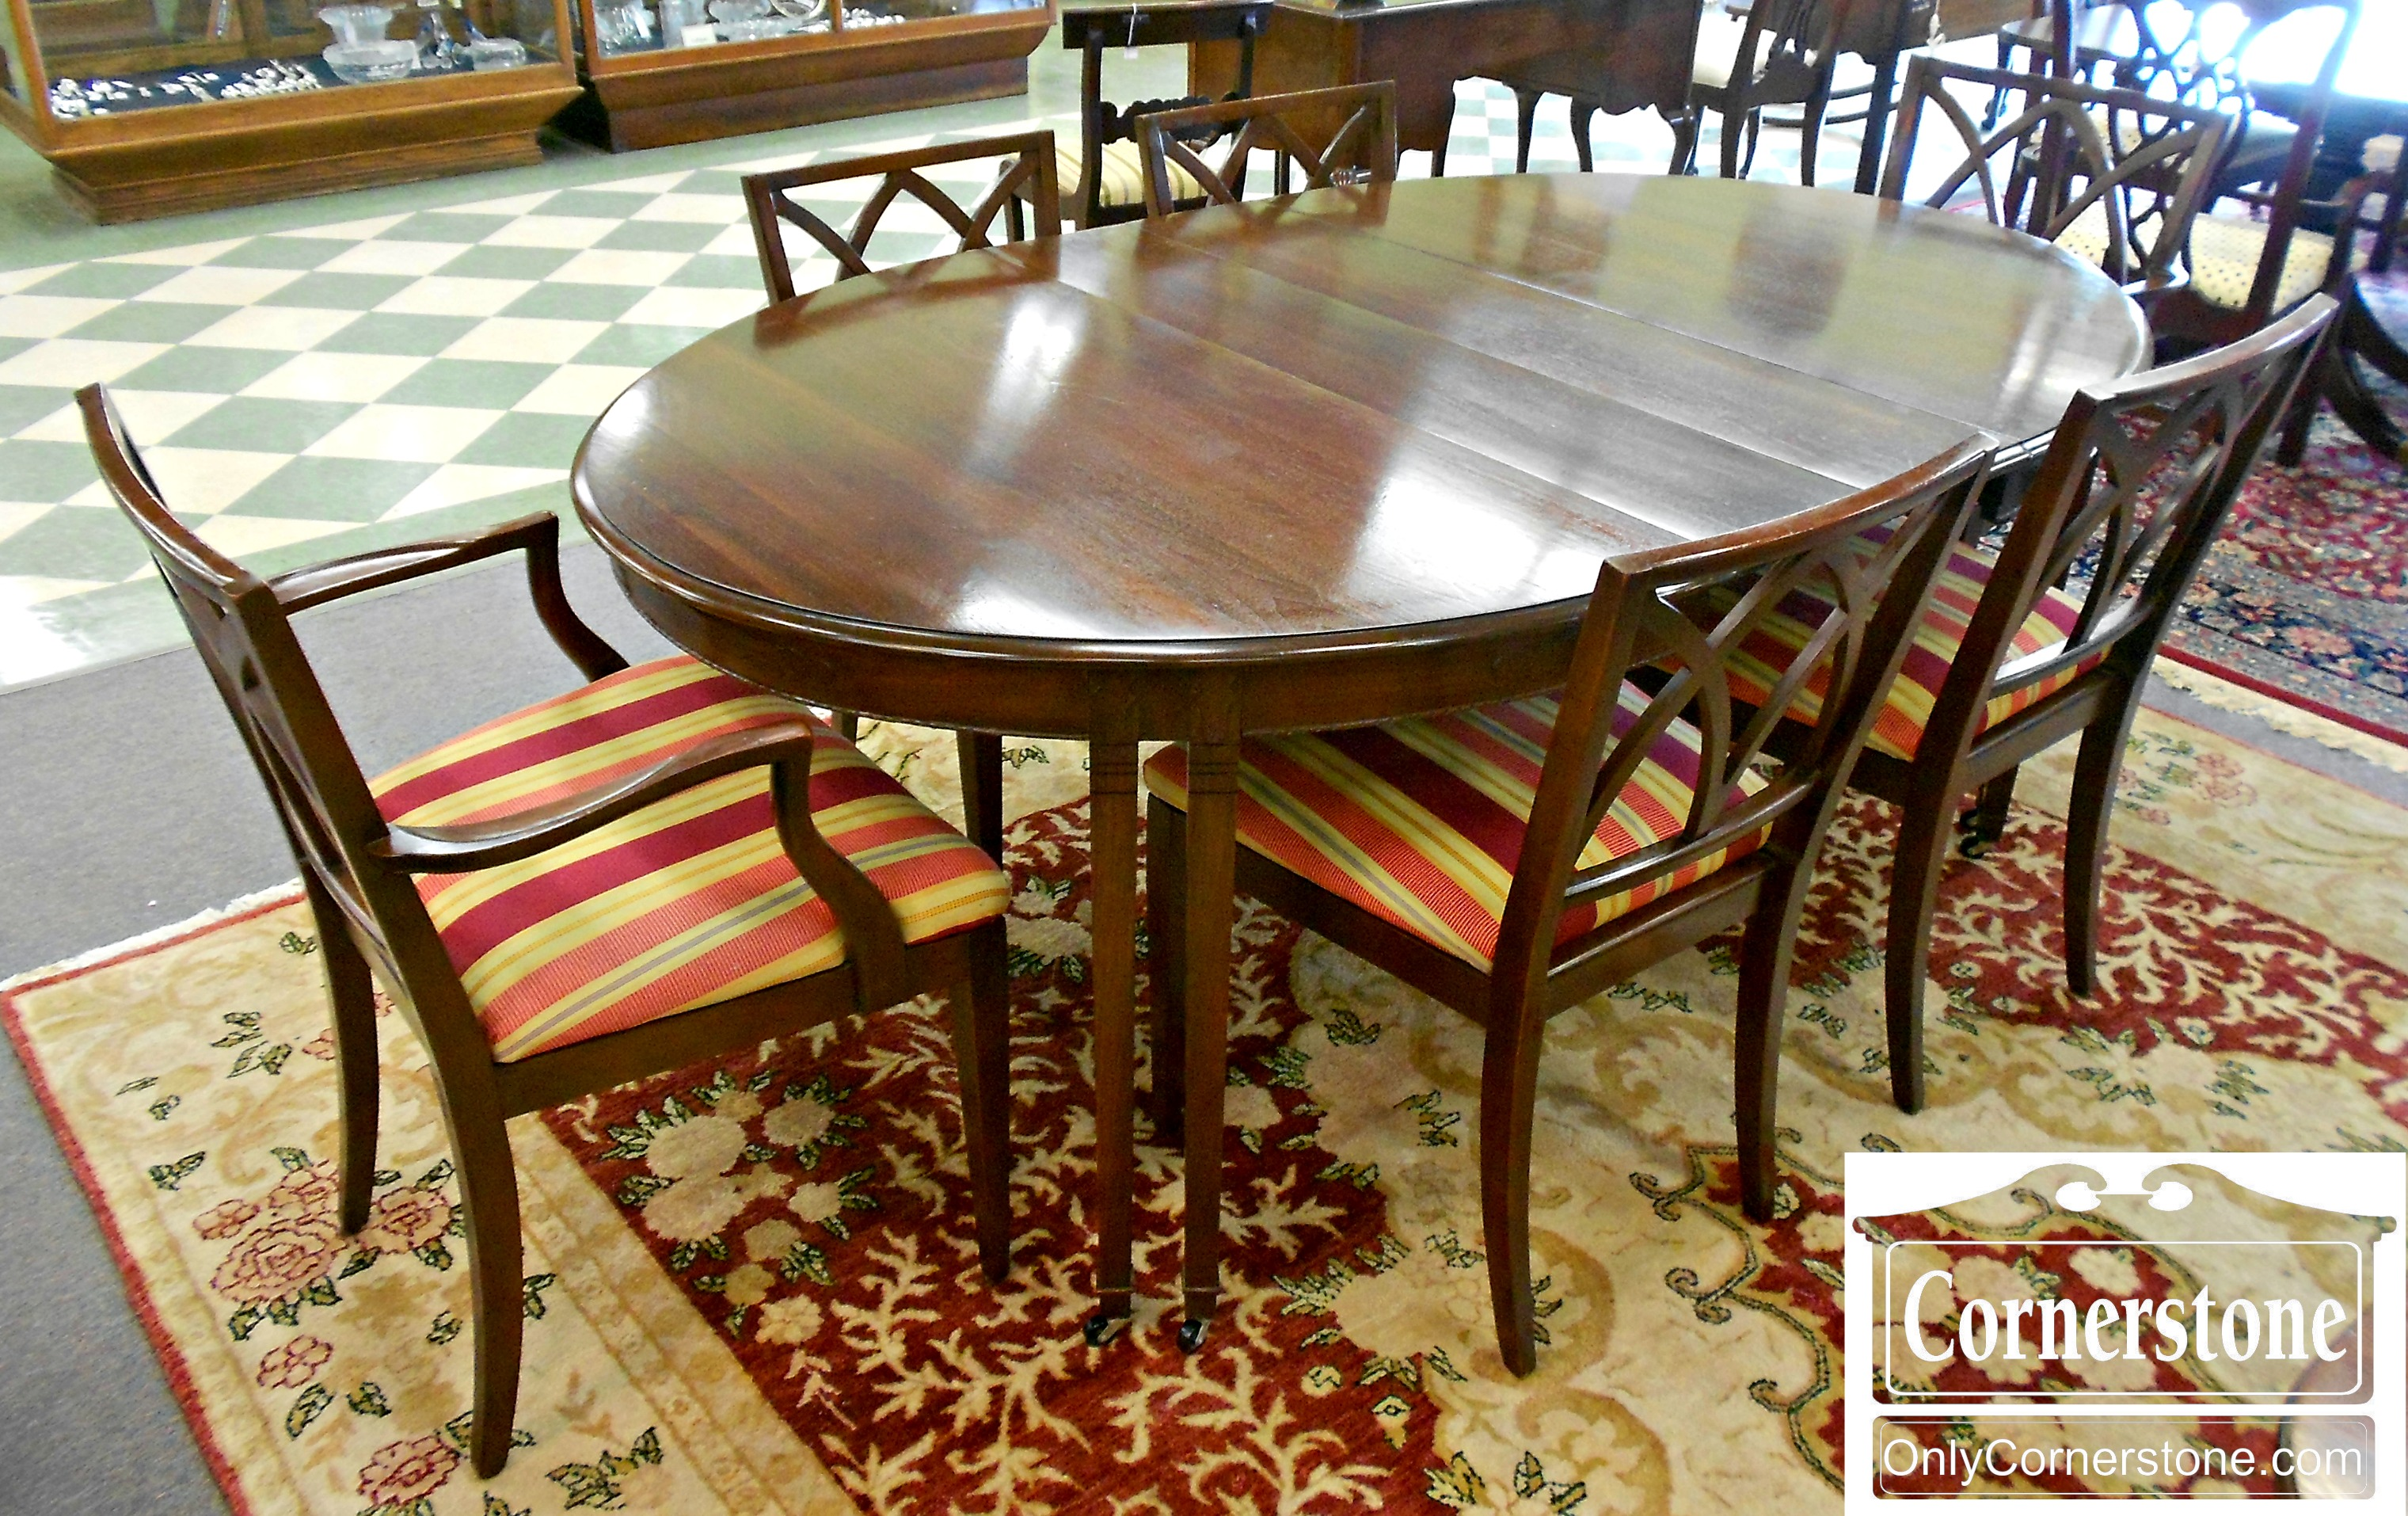 5979-2 Dining Set - Walnut Table with 4 Leaves, Pads, and 6 Mahogany Chairs